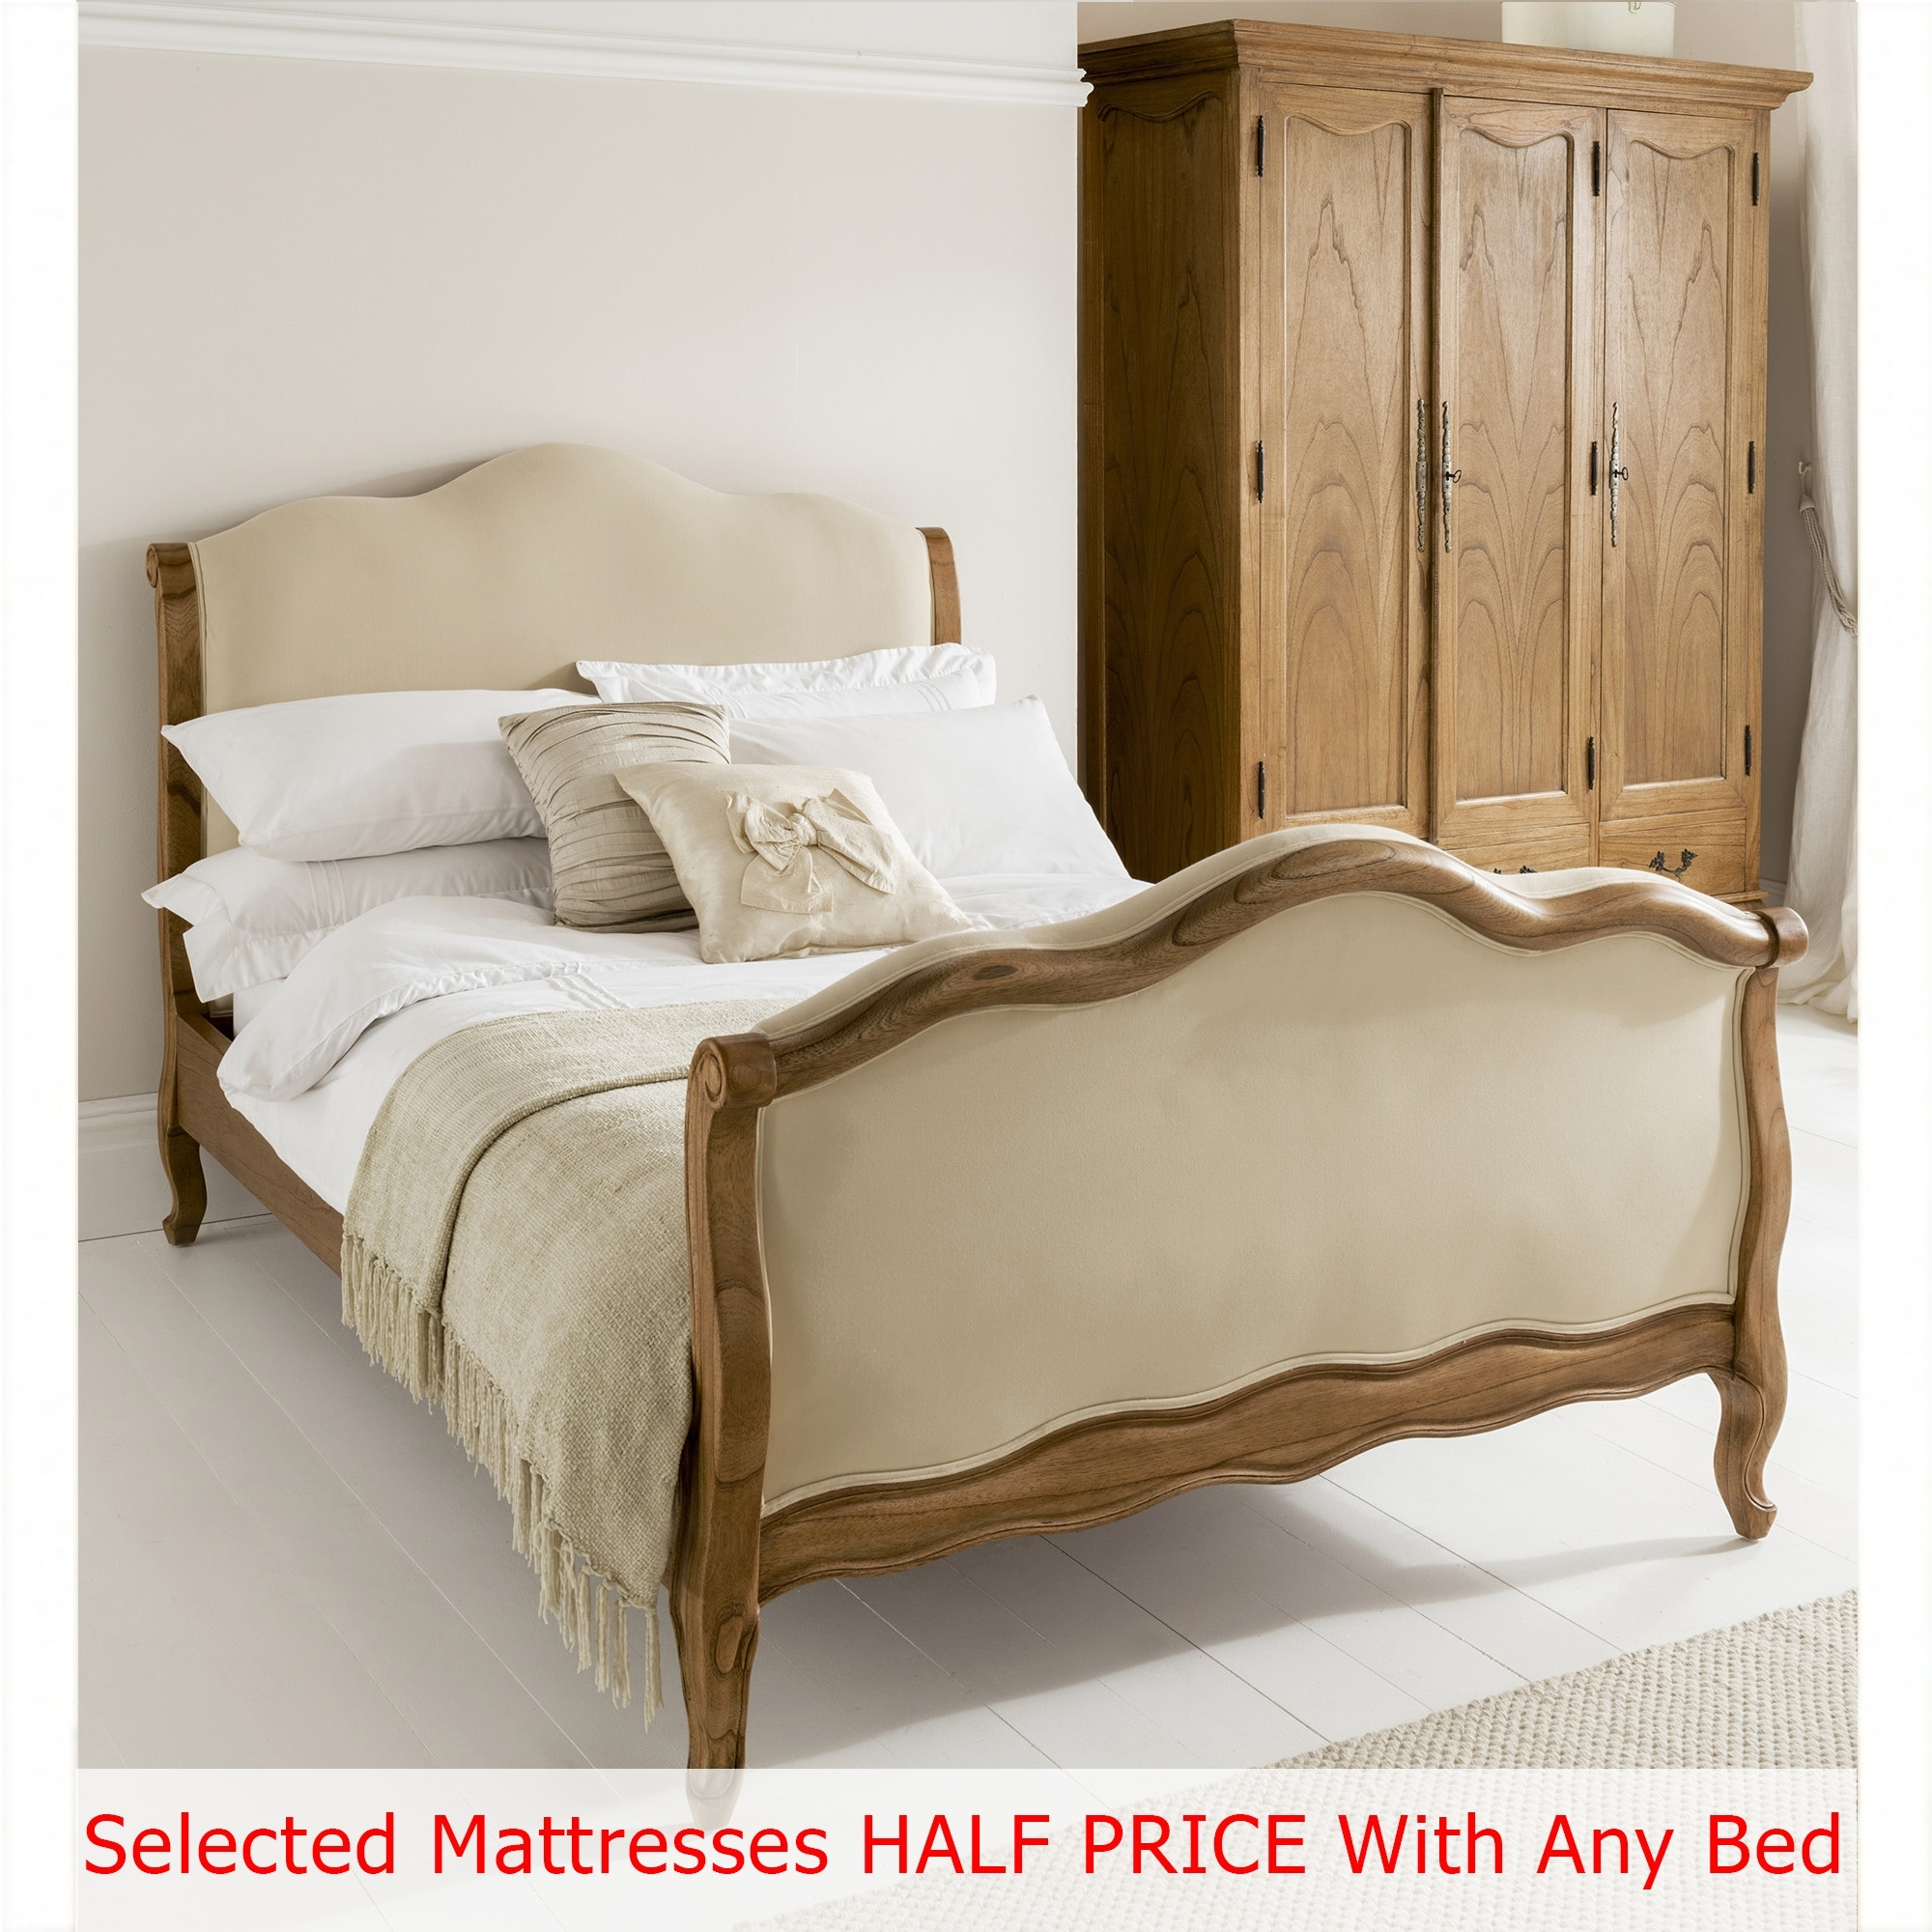 Montpellier bed size king mattress bundle deal Bed and mattress deals